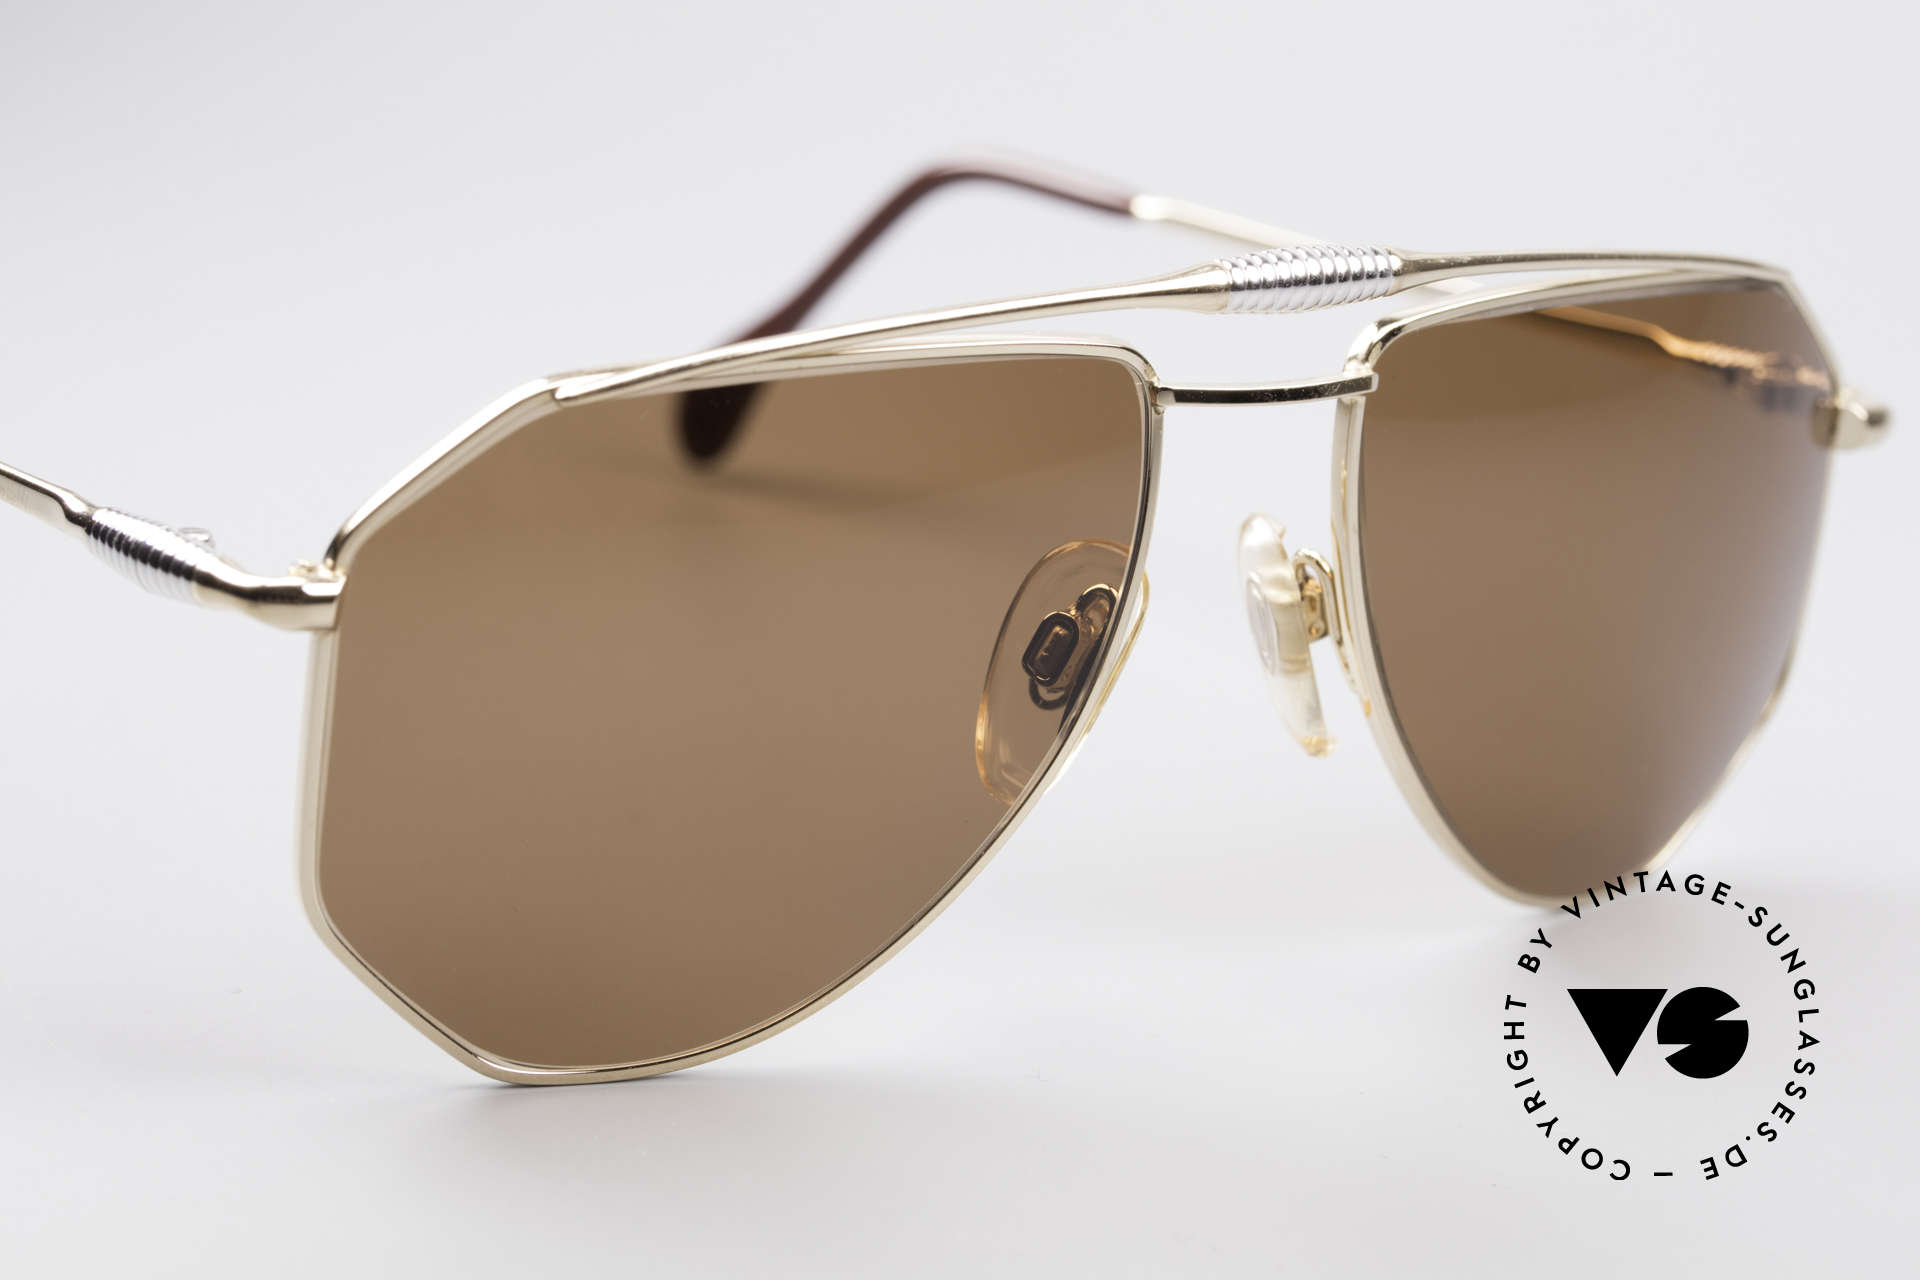 Zollitsch Cadre 120 Medium 80's Sunglasses, NO retro shades, but a 30 years old original, M size 56/18, Made for Men